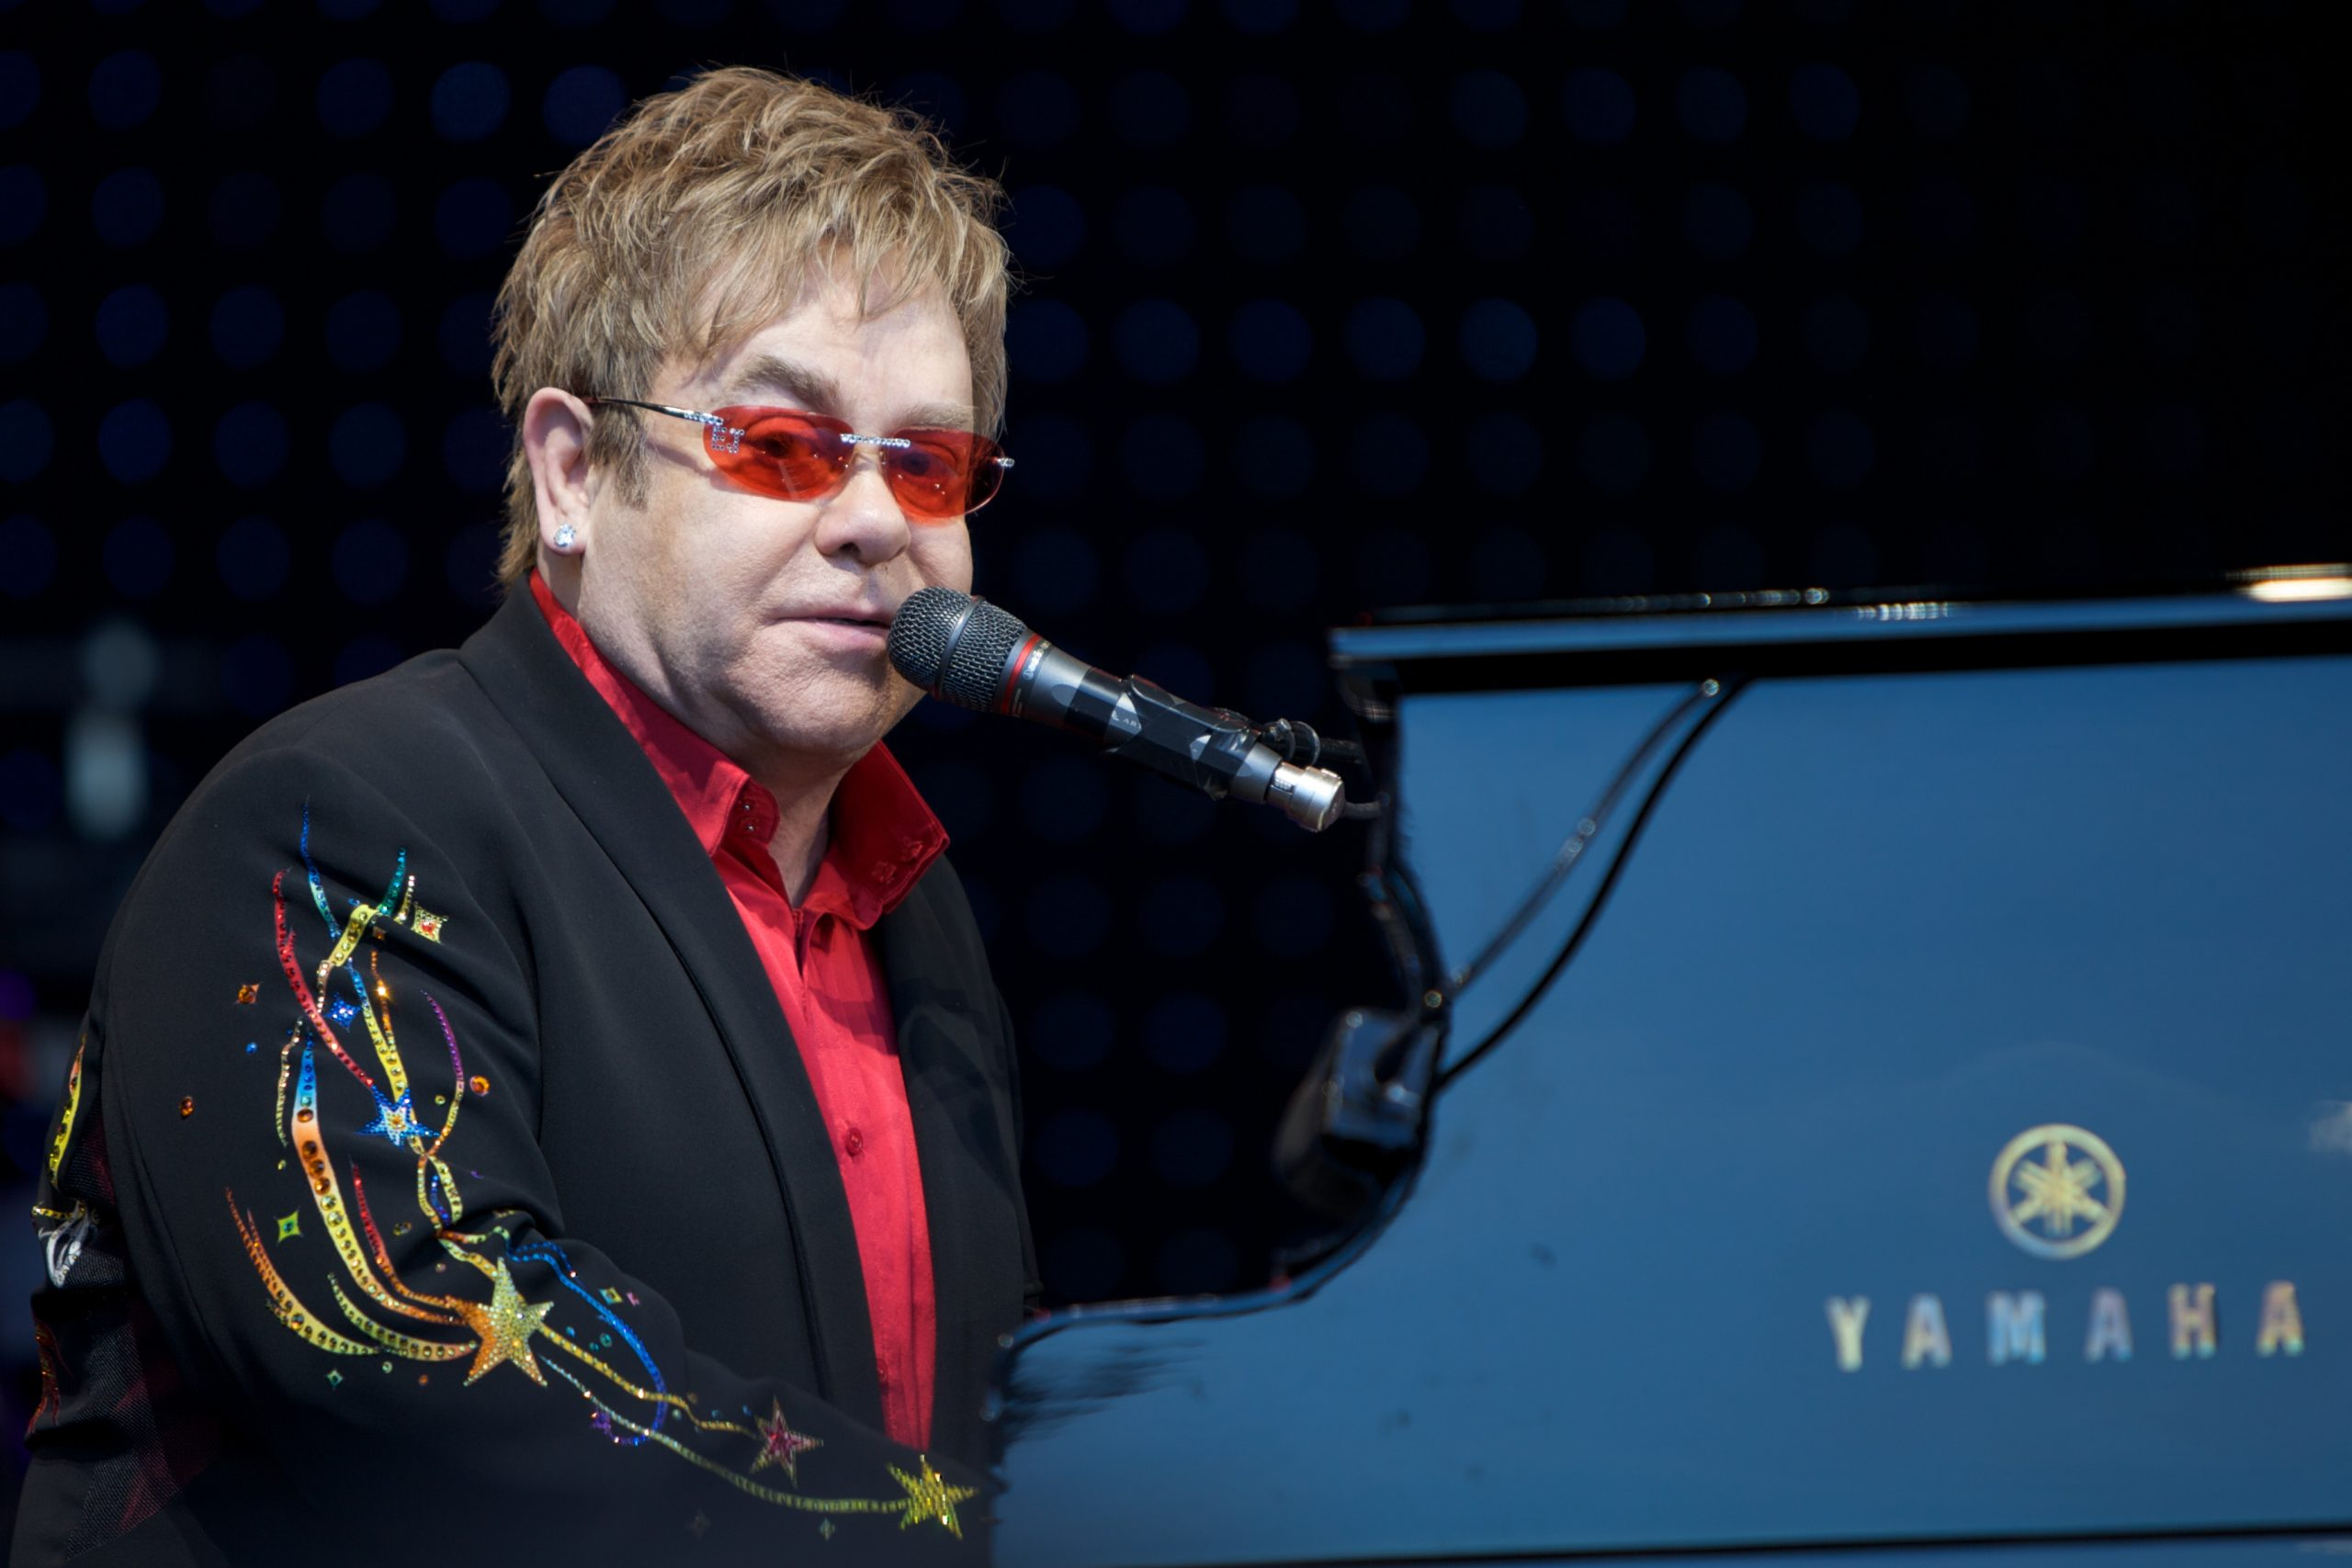 Watch Elton John Pay Tribute to his Late Mother with 'Your Song'